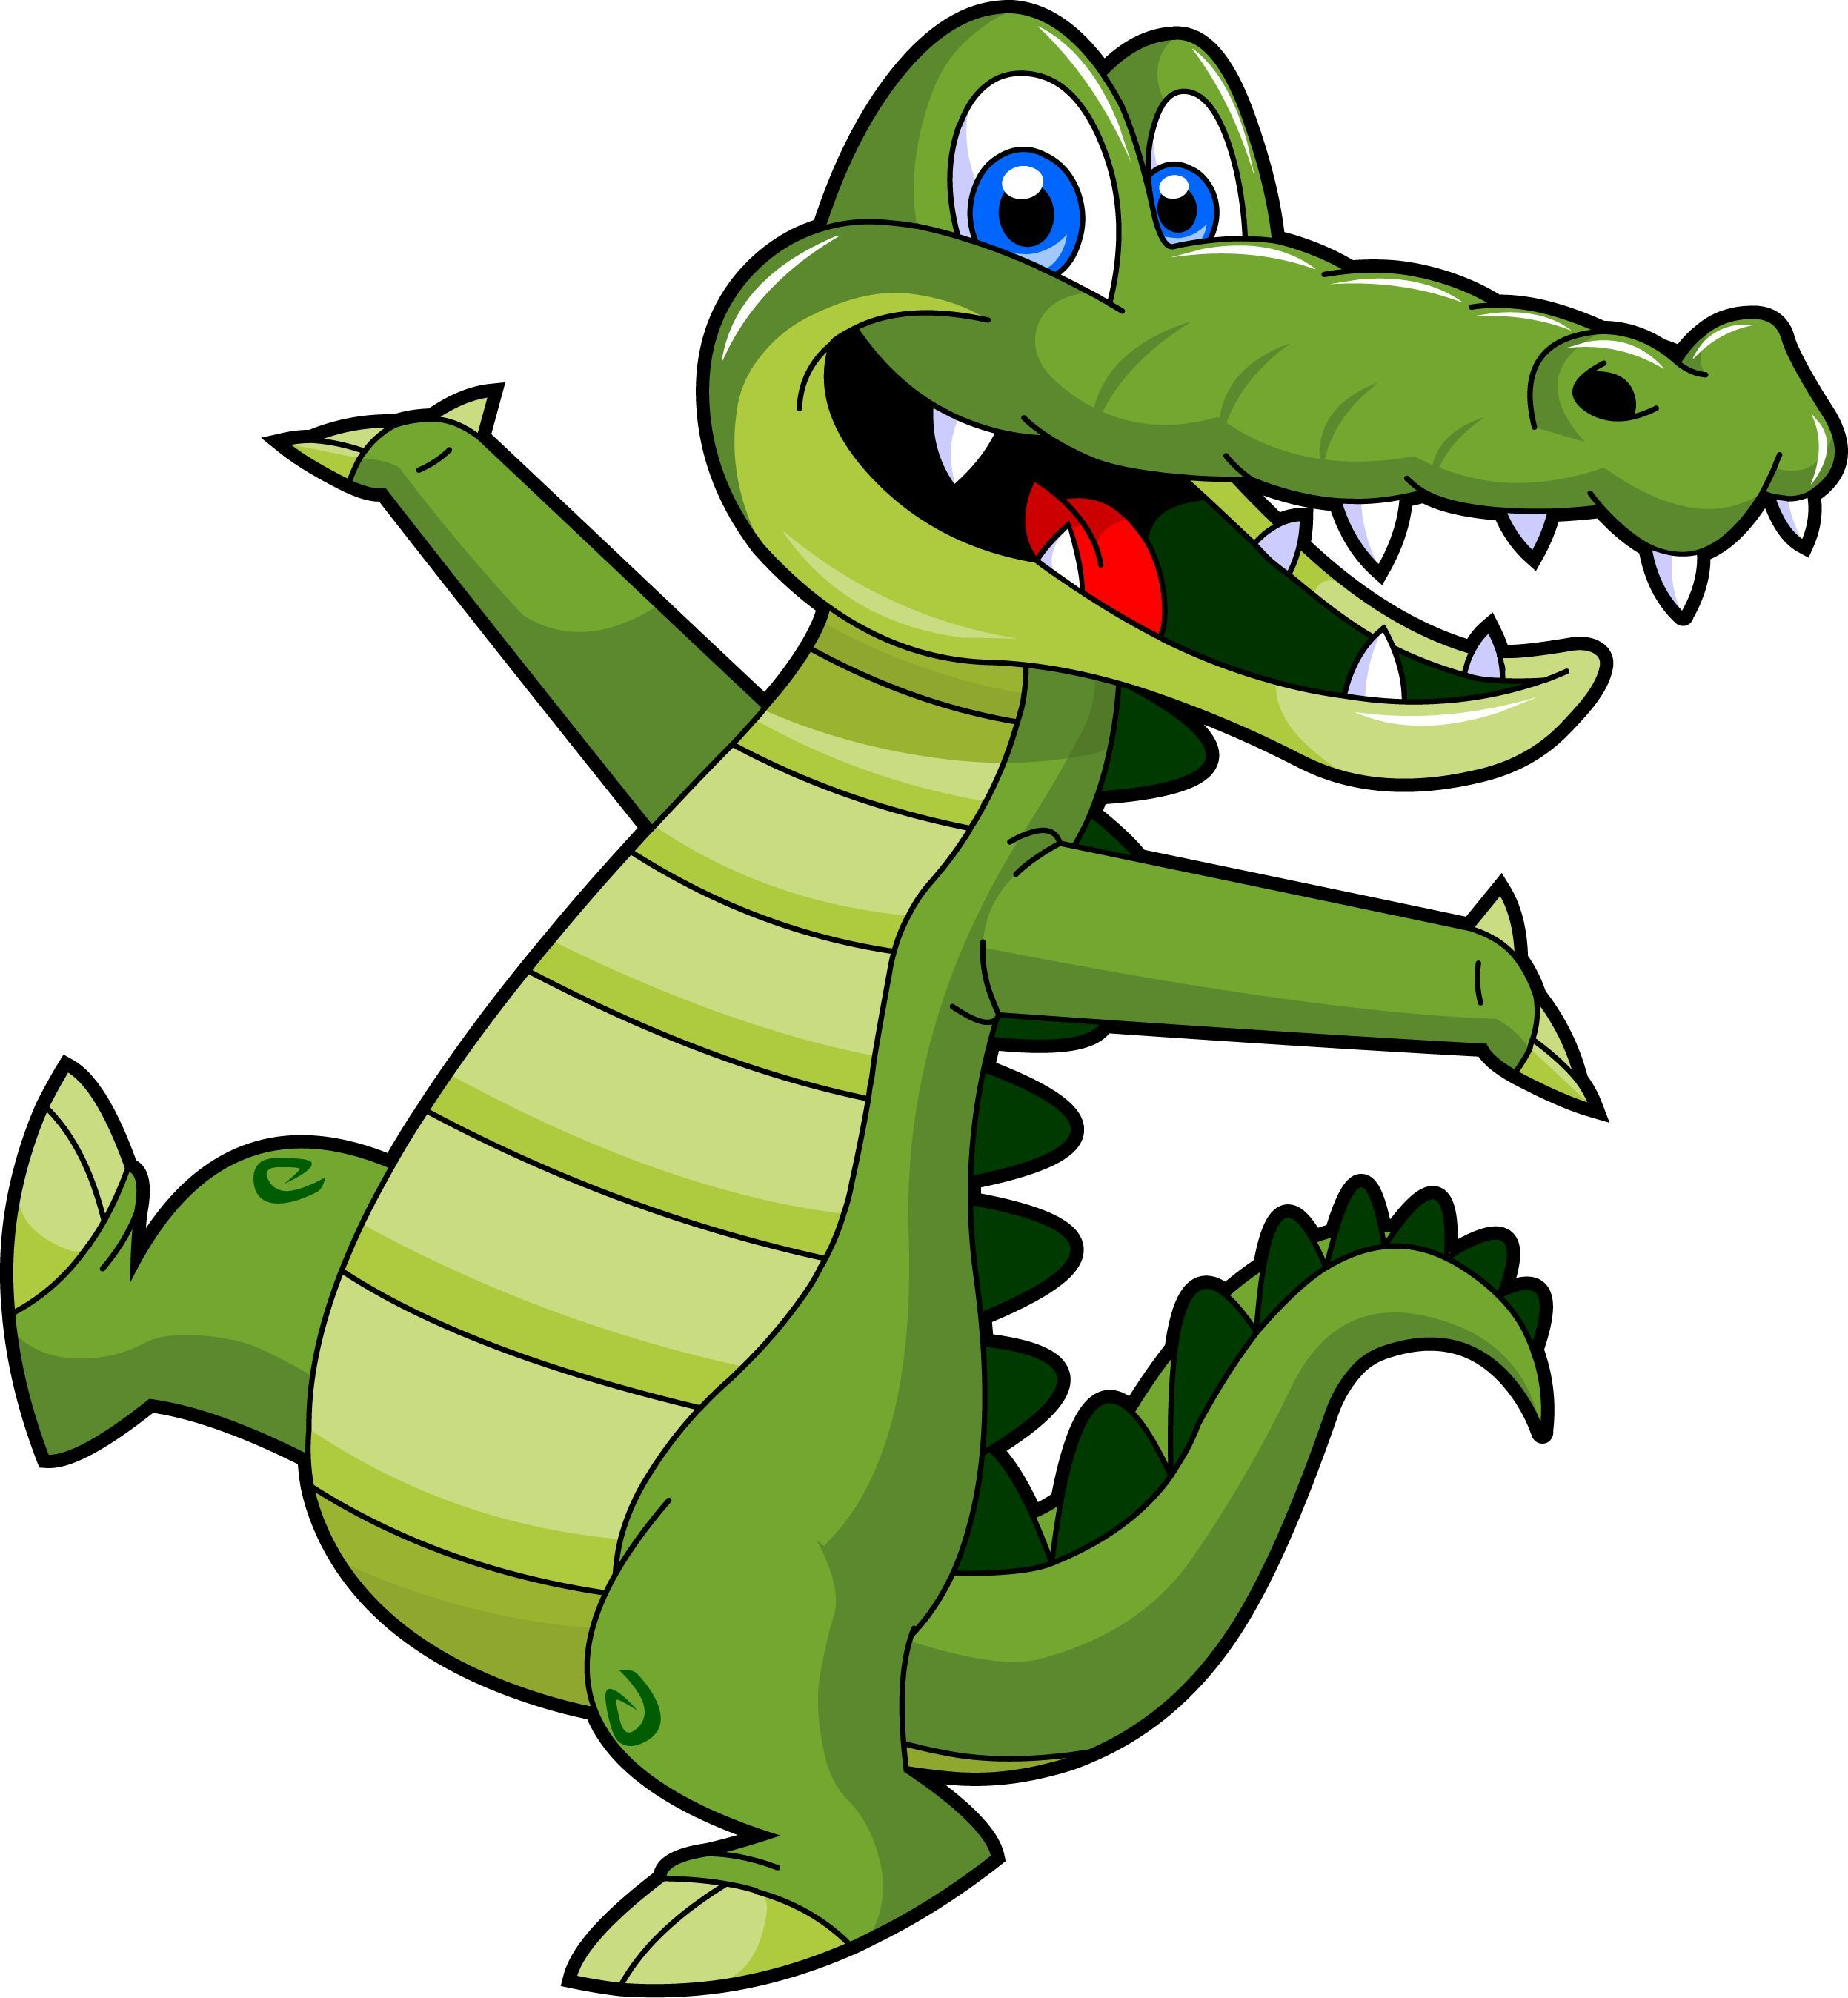 Alligator cute clipart graphic freeuse library Alligator Clip Art for Teachers | a05-02-dancing-alligator-clip-art ... graphic freeuse library